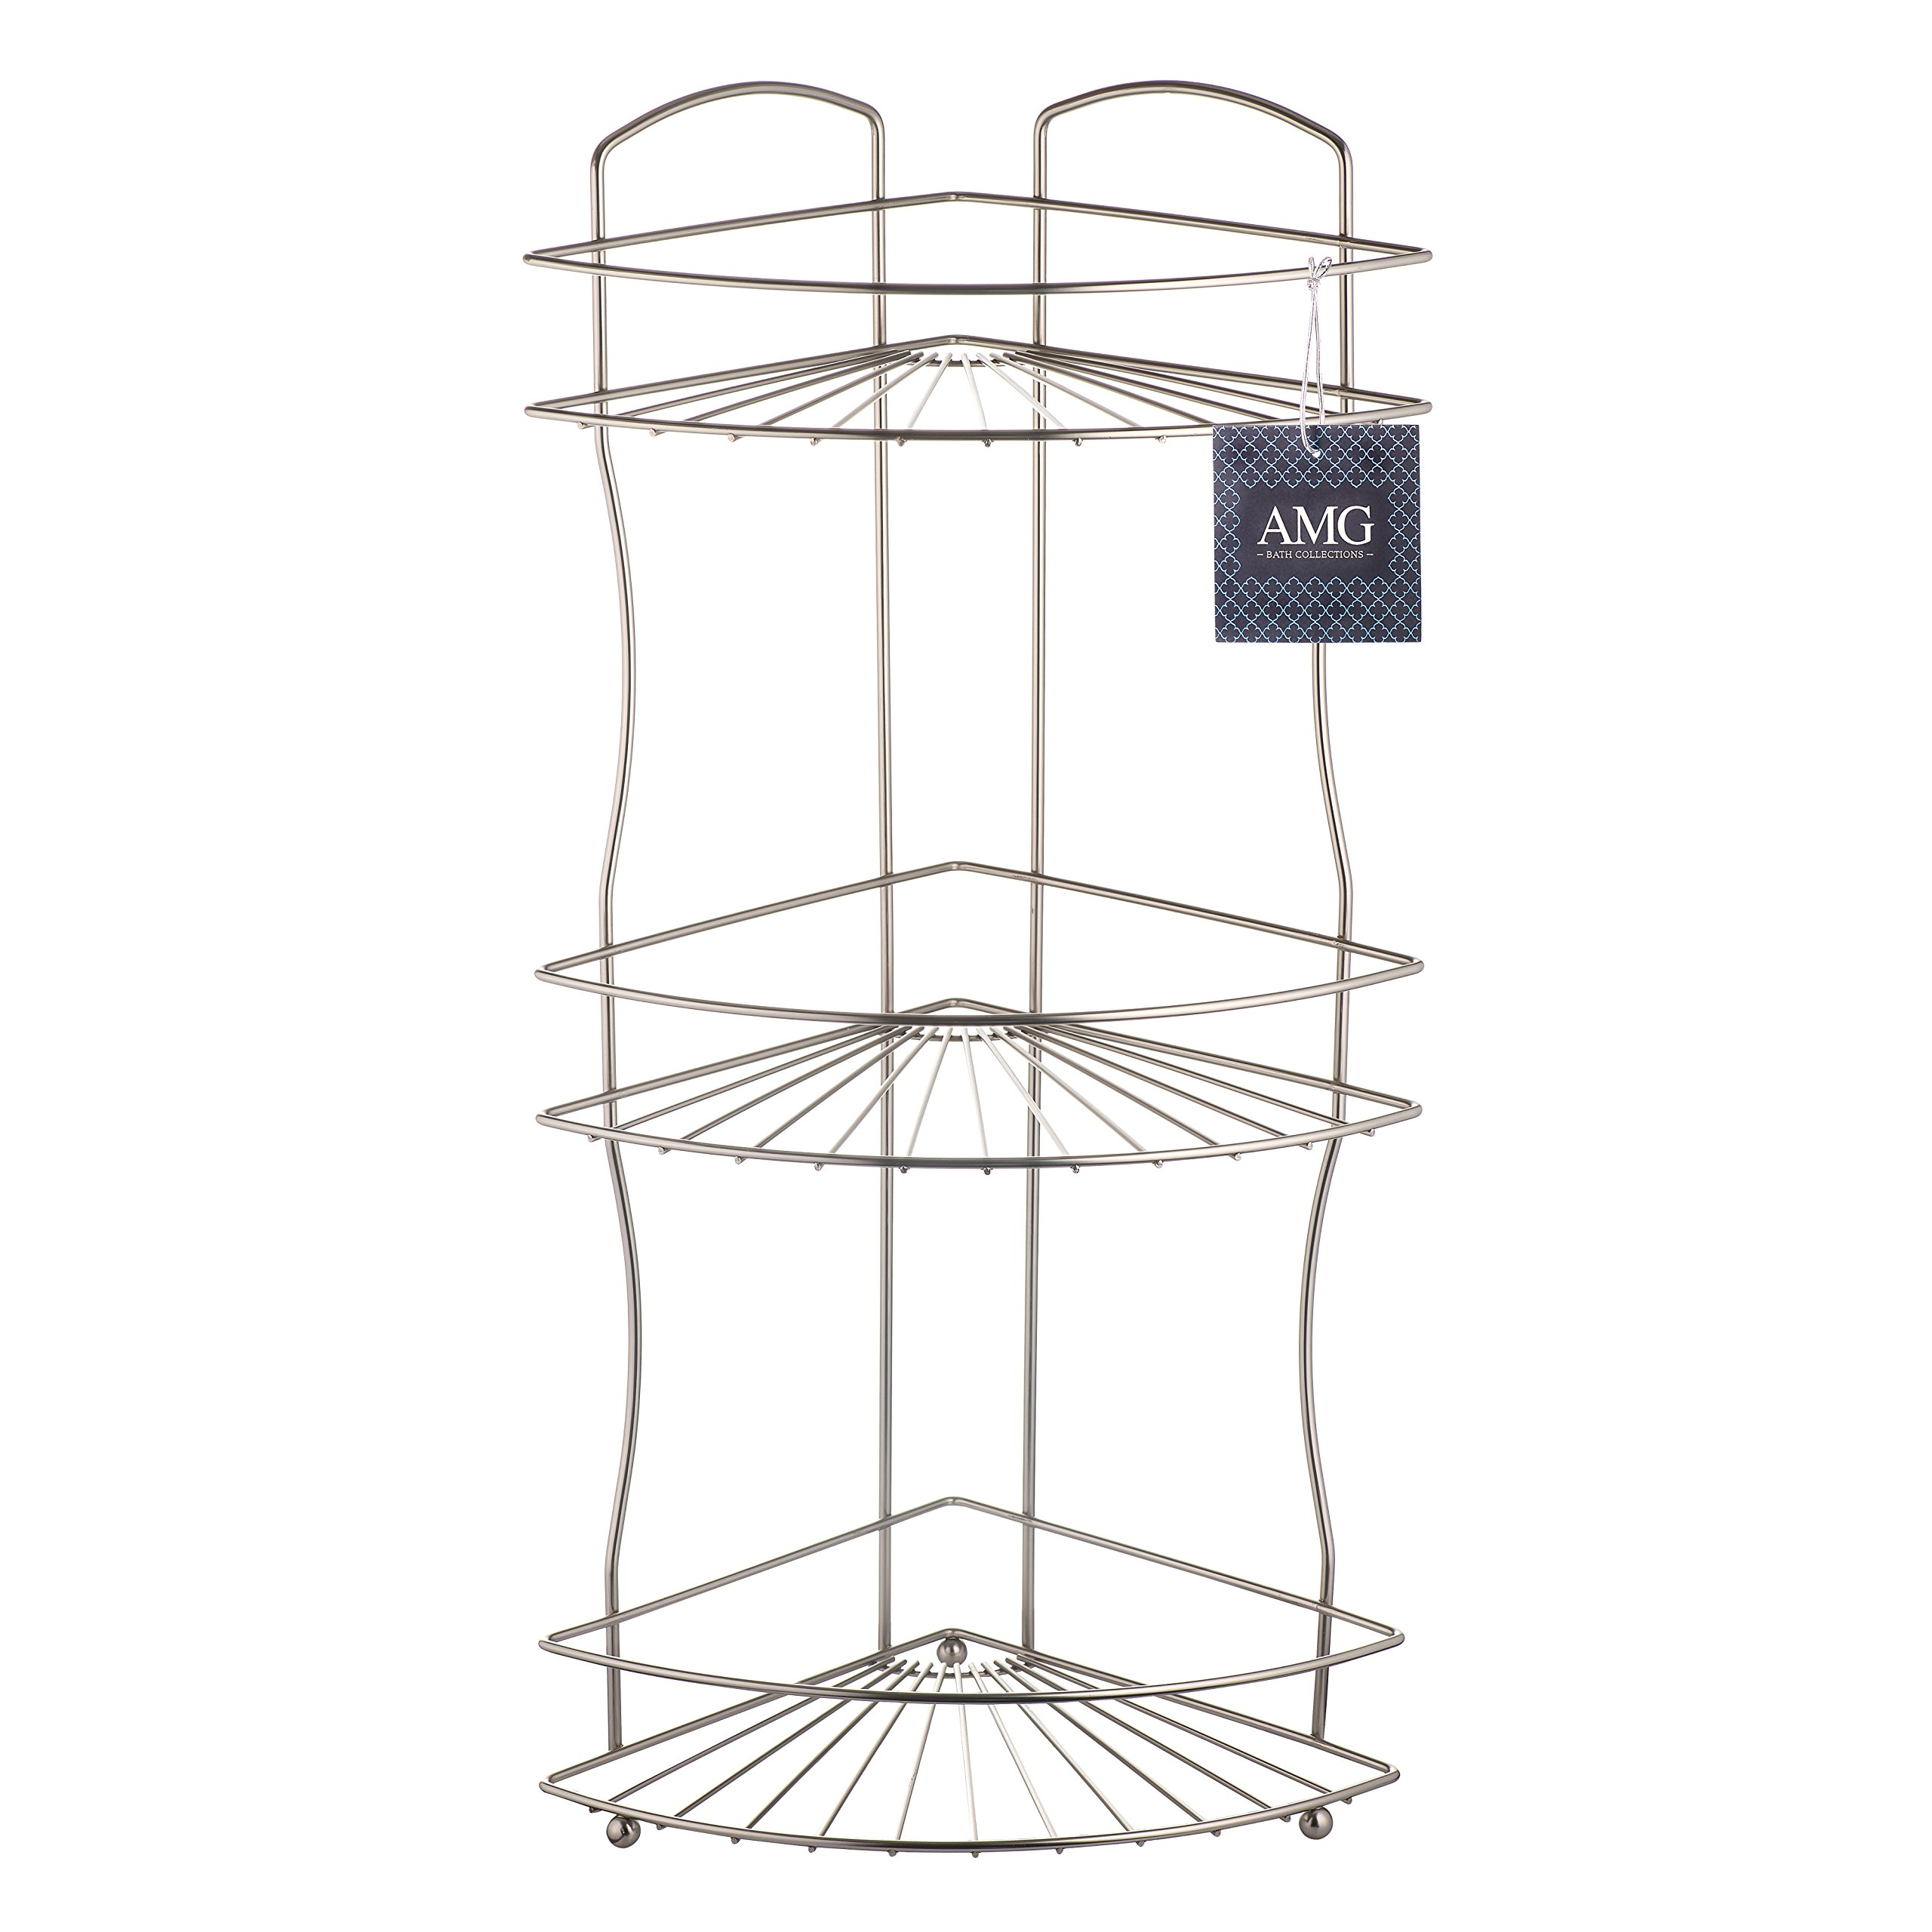 AMG and Enchante Accessories Free Standing Bathroom Spa Tower Floor Caddy, FC232-A SNI, Satin Nickel by AMG (Image #8)